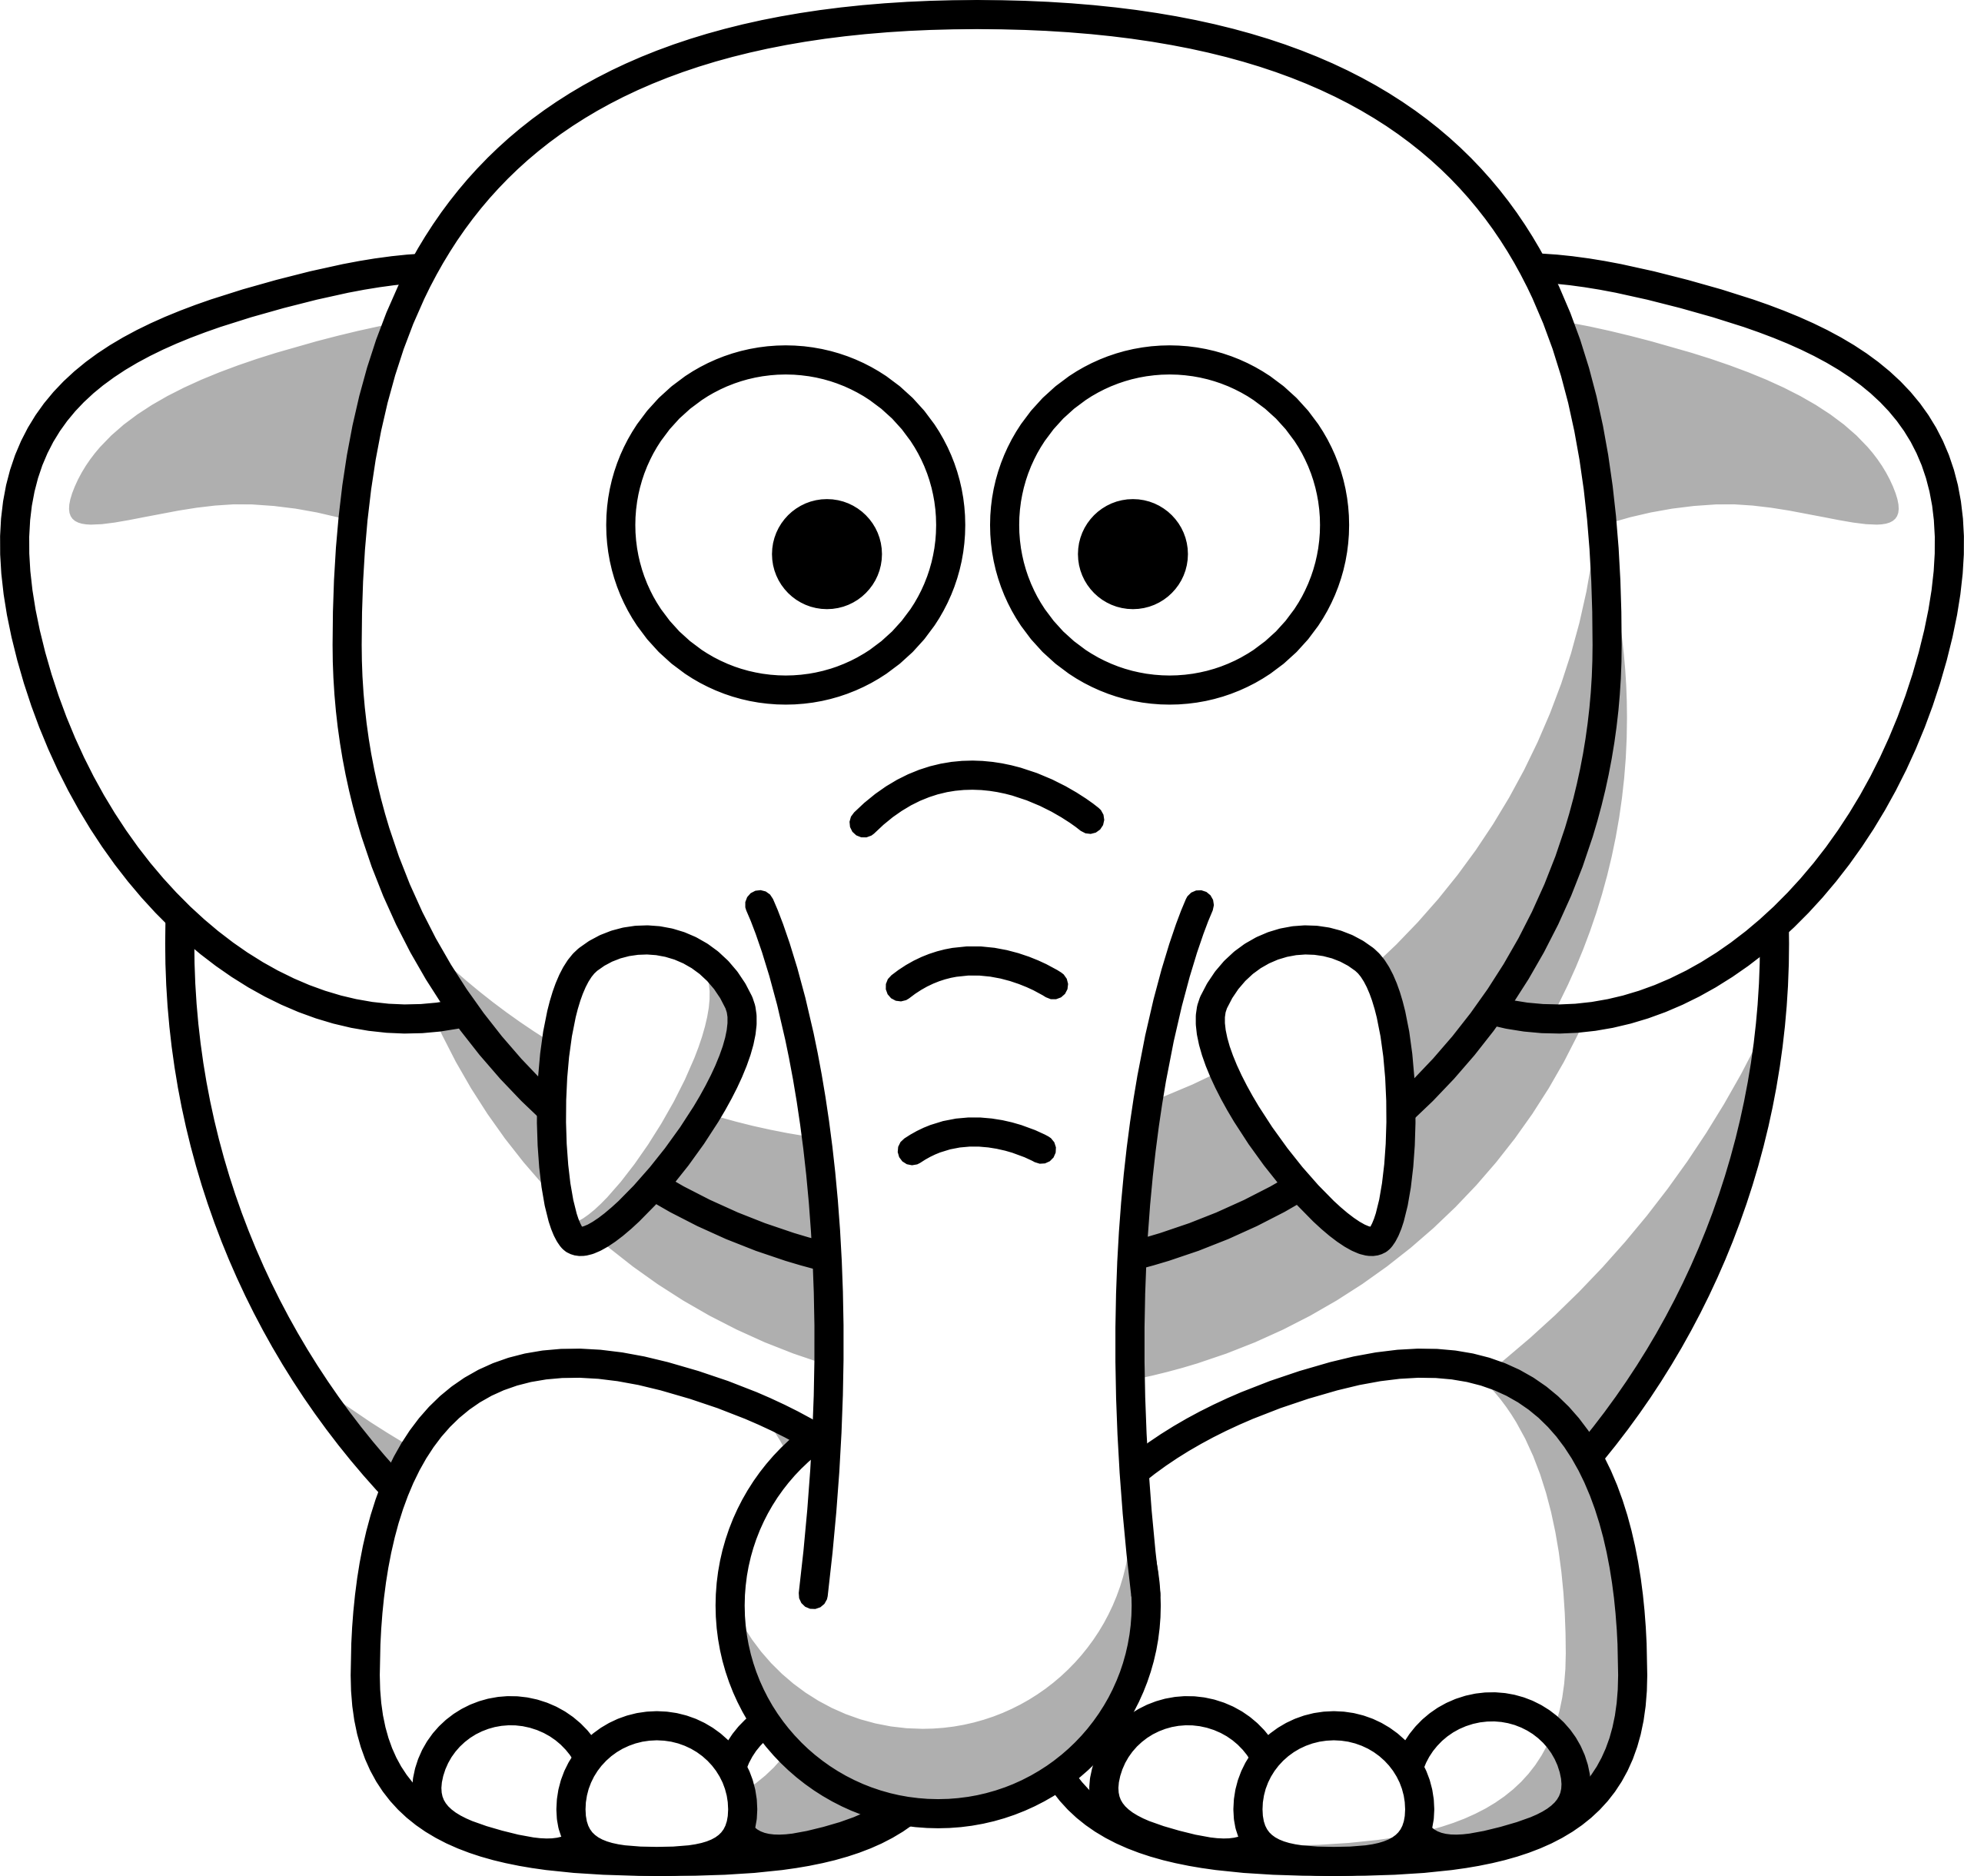 Net Clipart Black And White Elephant Copy Black White Clip Art Animal Black And White Png Download Large Size Png Image Pikpng